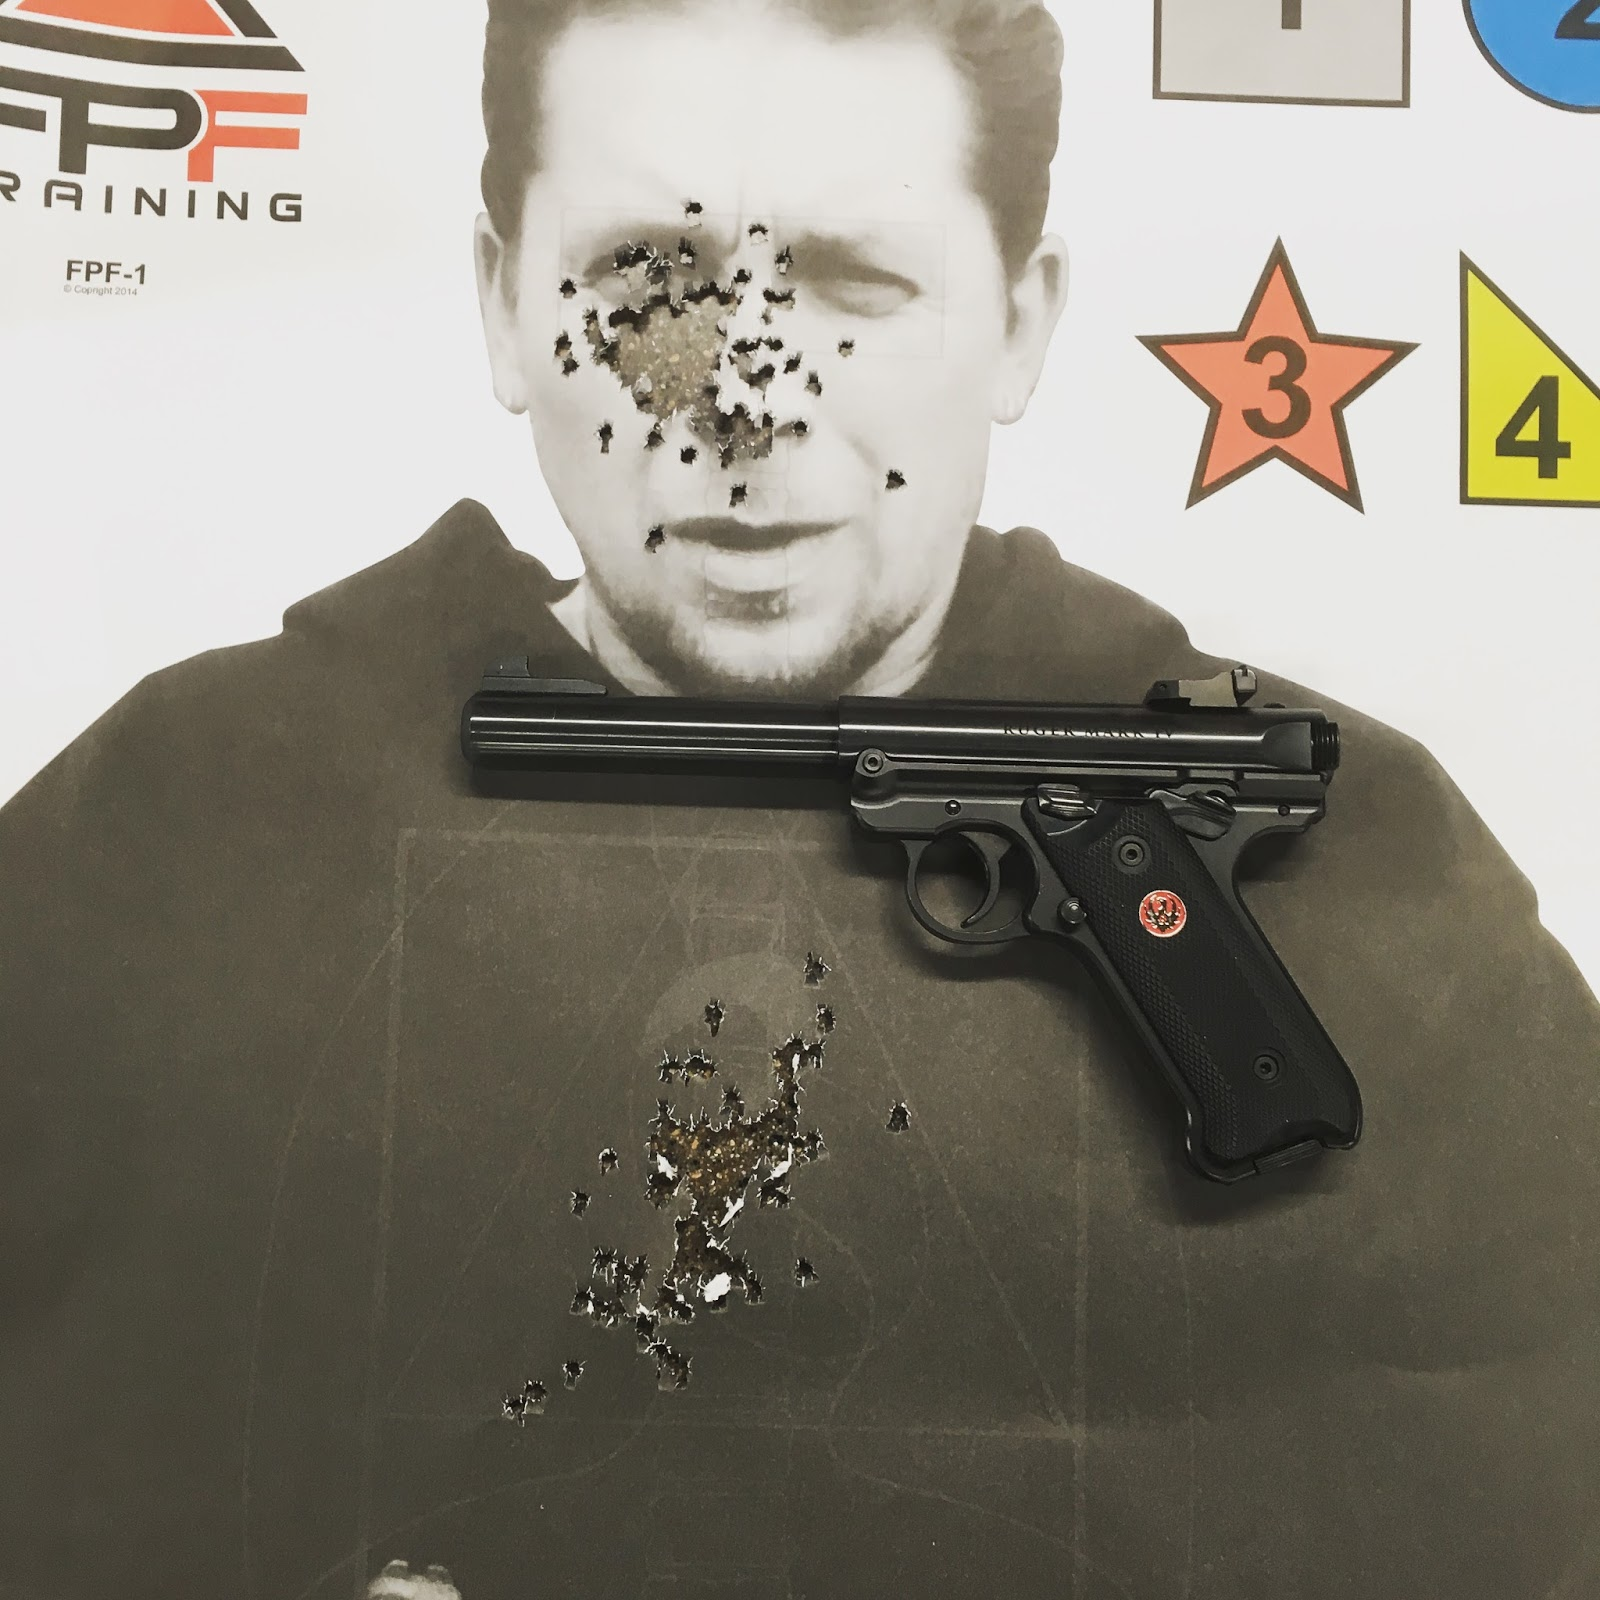 The loctite on the front sight held fine two hundred rounds with no loosening of the screw howver the rear sight assembly kept drifting left and had to be